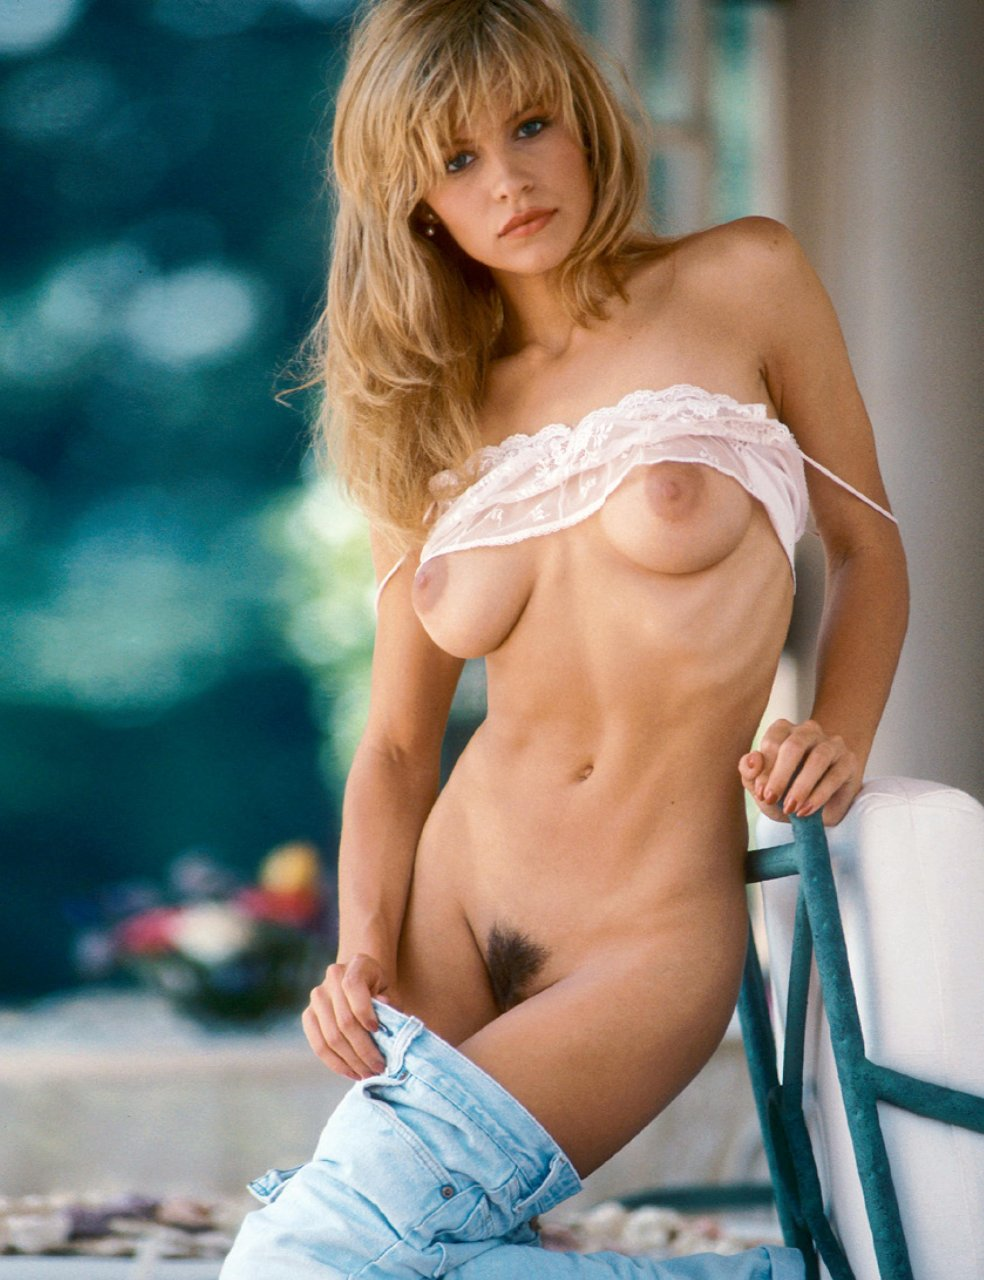 pamela anderson hot sex nude